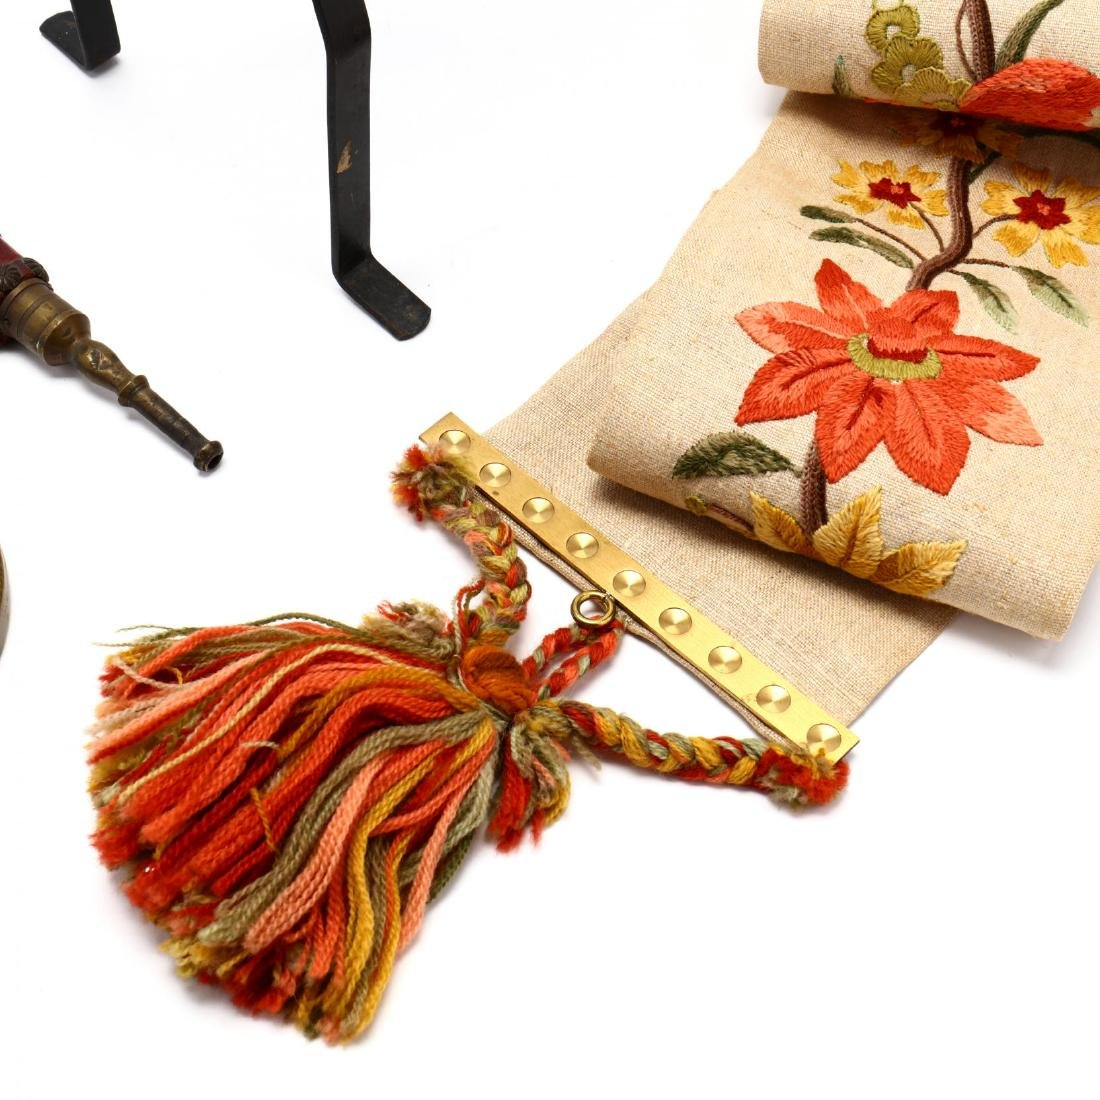 Decorative Accessories Grouping - 2